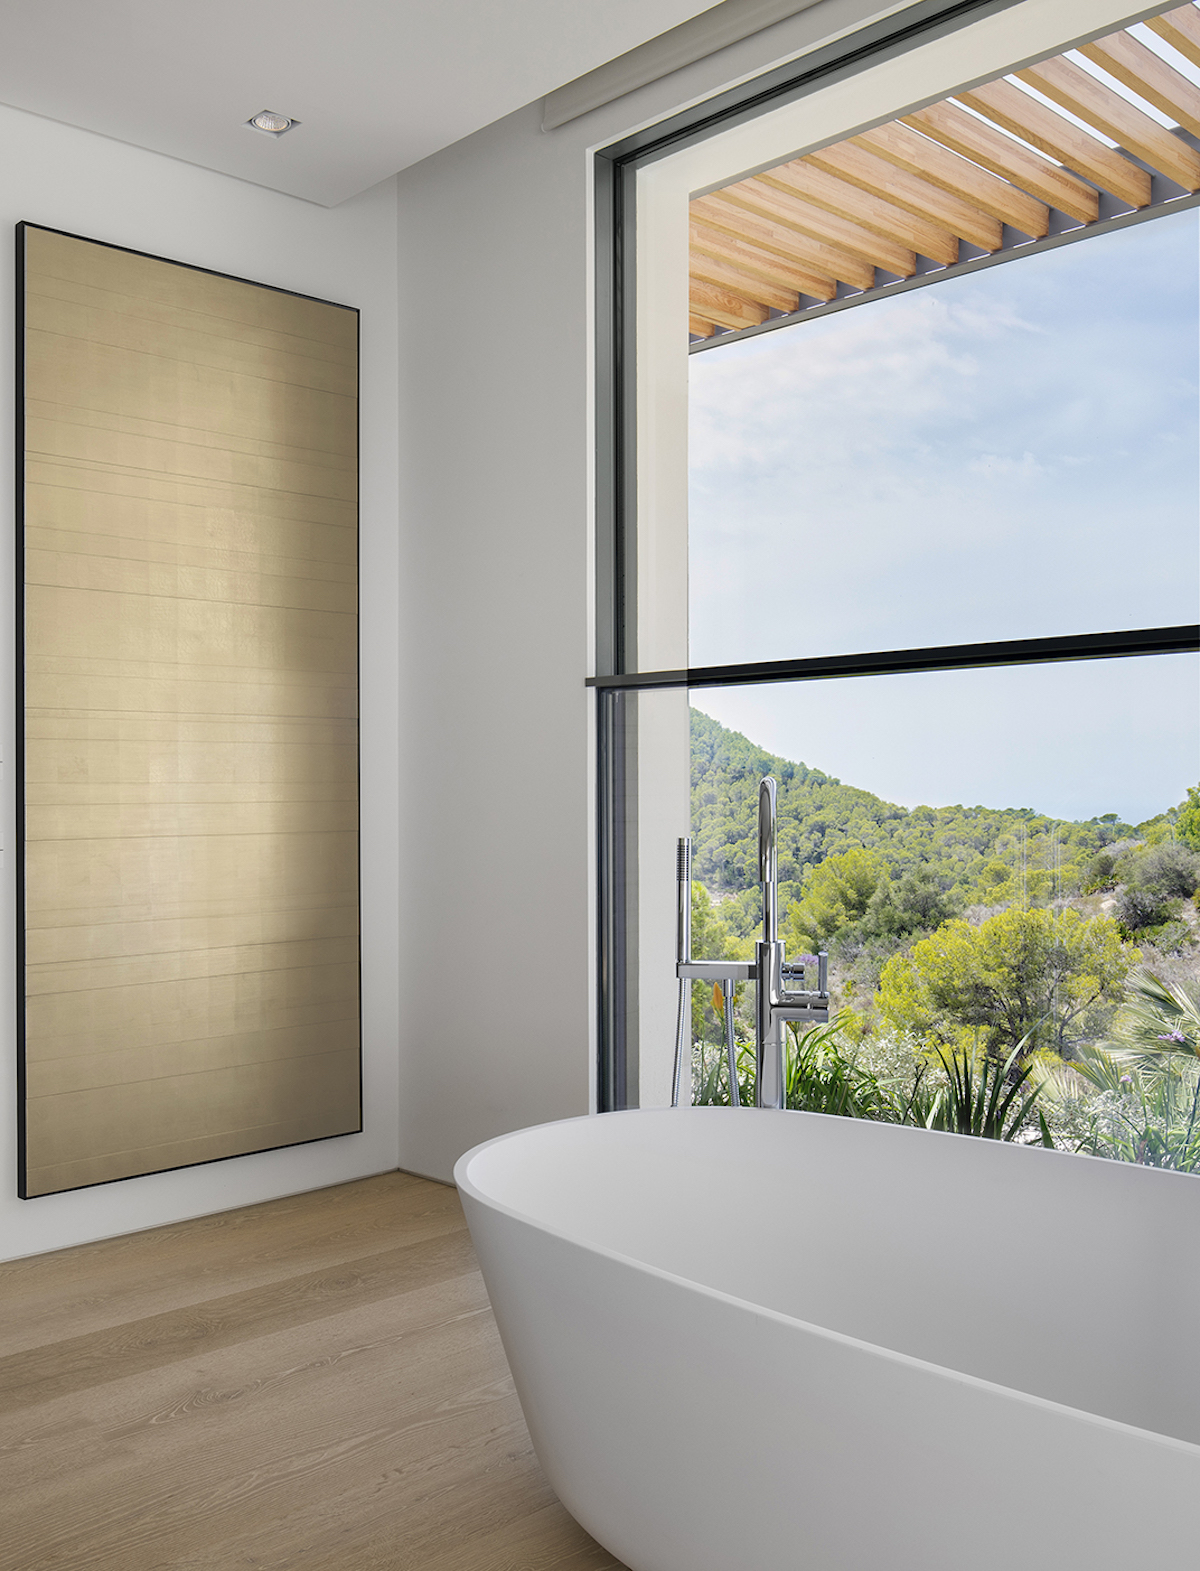 The master bathroom offers a very beautiful view of the valley and welcomes the fresh colors into its spa-inspired decor